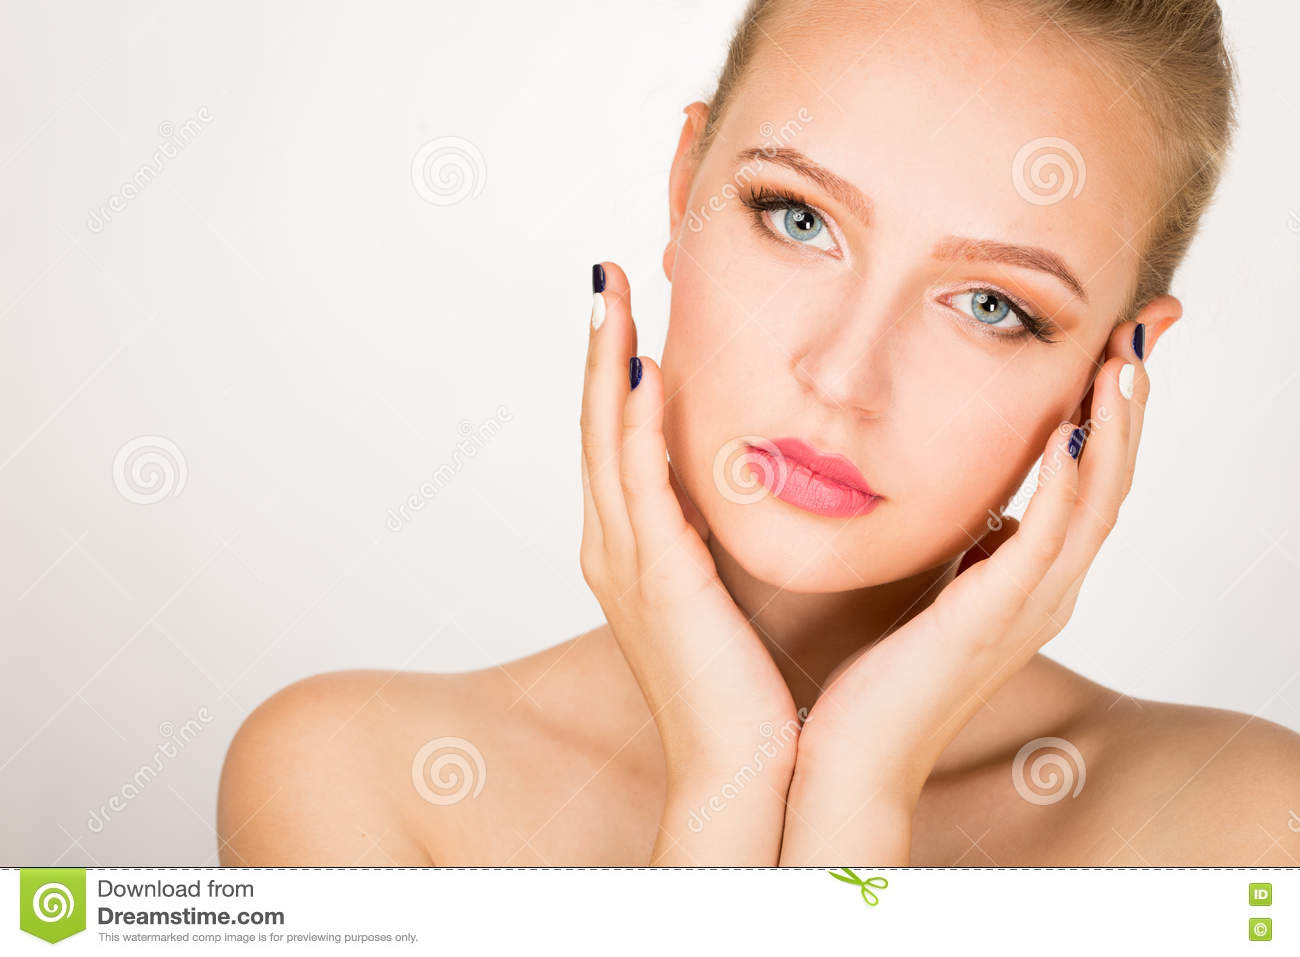 Face of a beautiful young woman